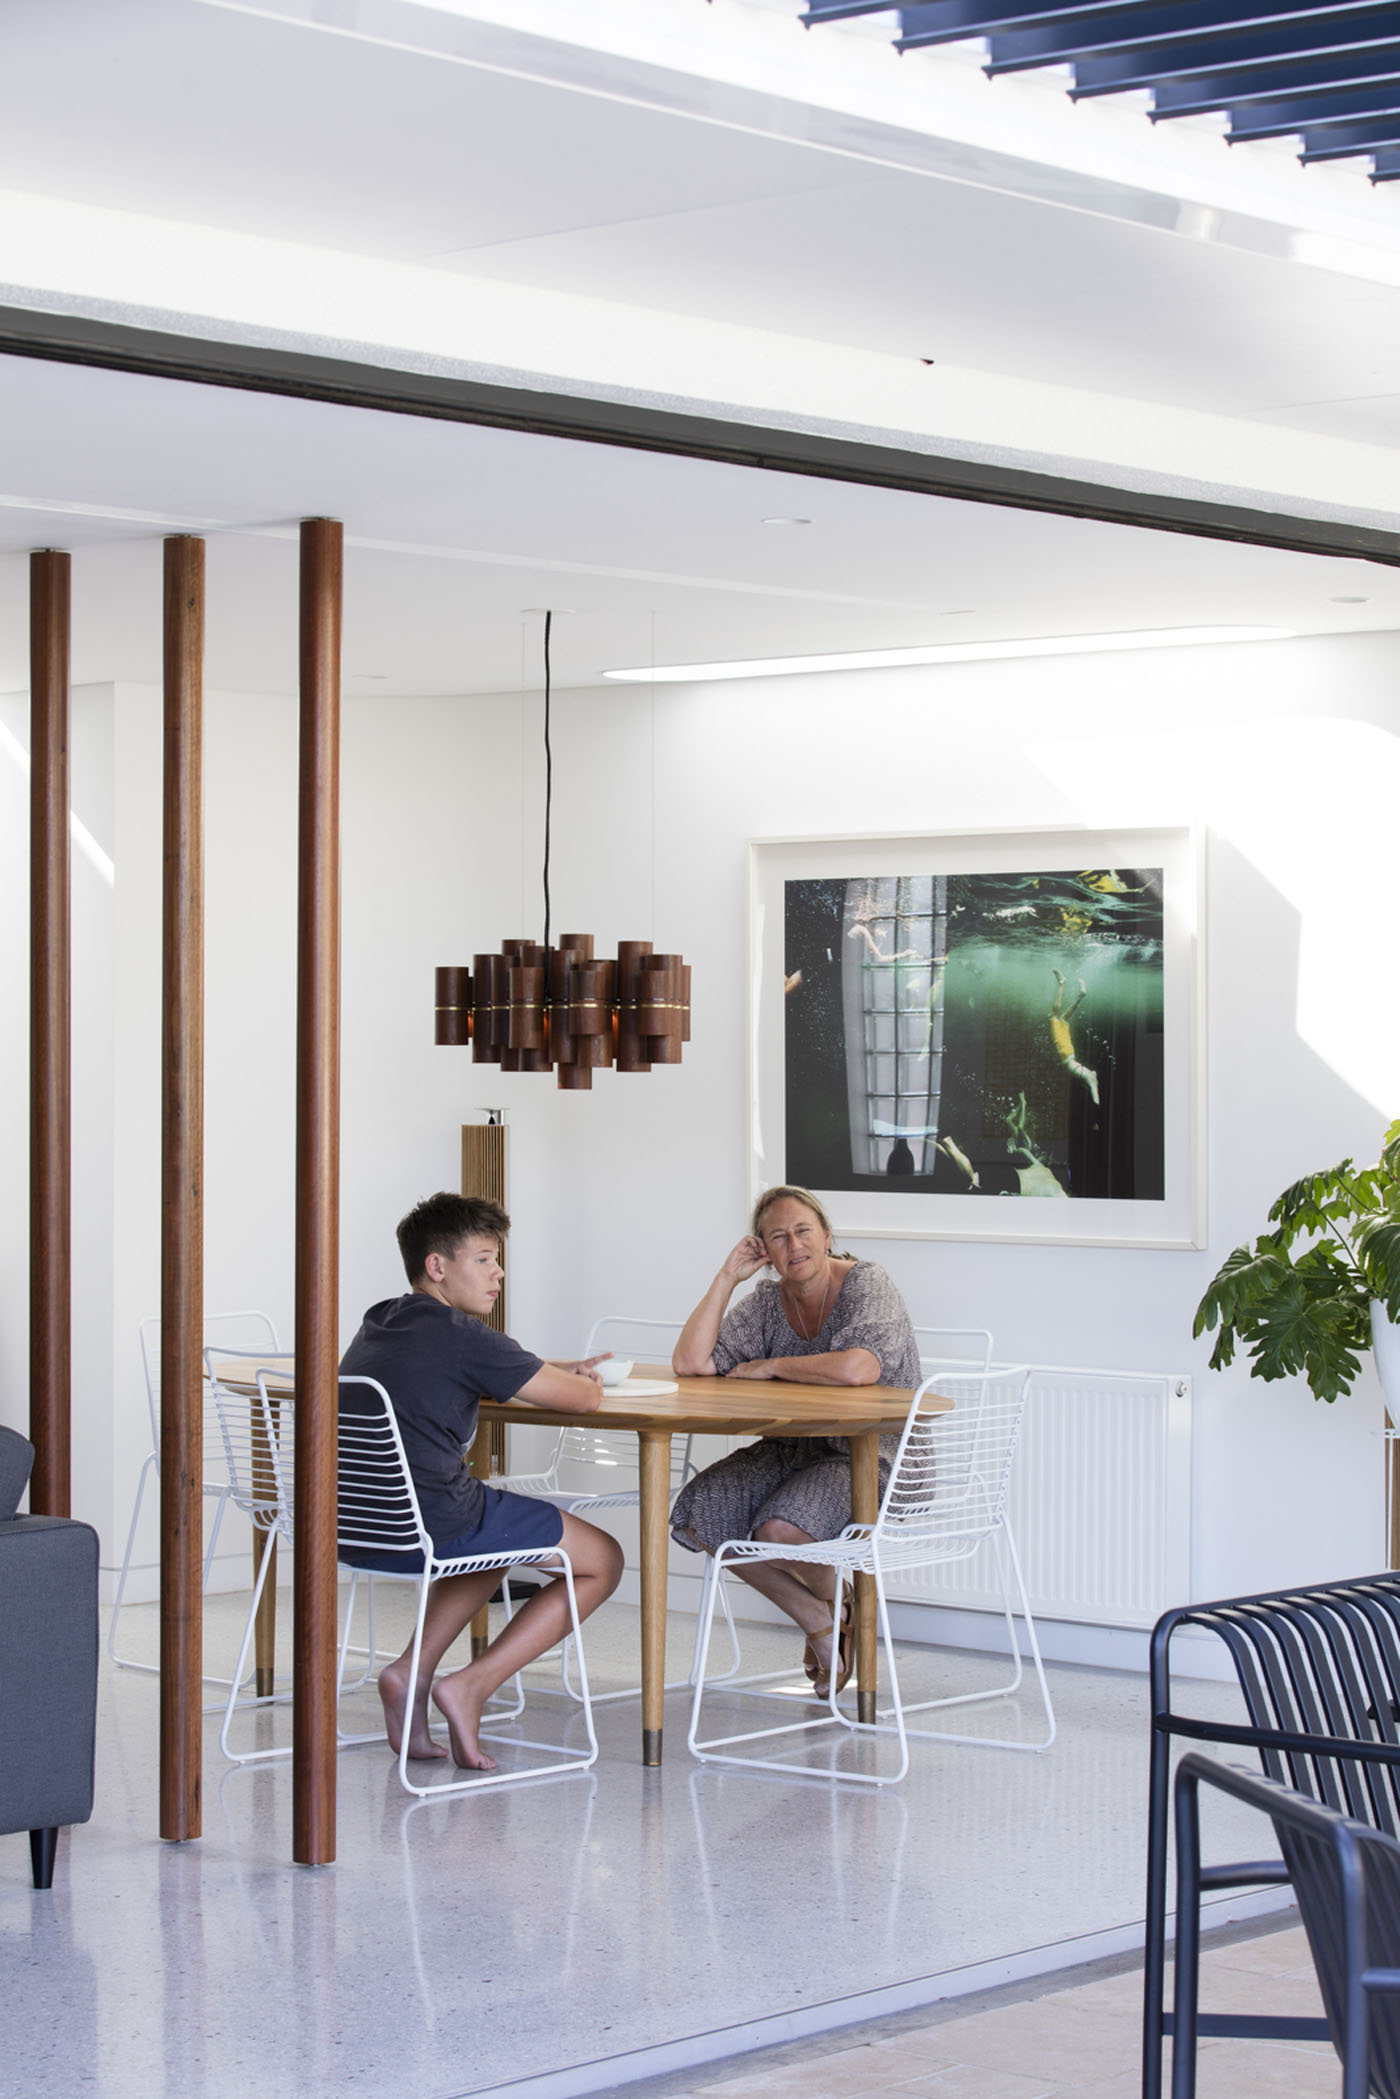 Conway Atkins House in Dover Heights by Sydney architect Sam Crawford Architect. An opening towards the garden and new skylights create an amazing light quality and direct connection to the garden.